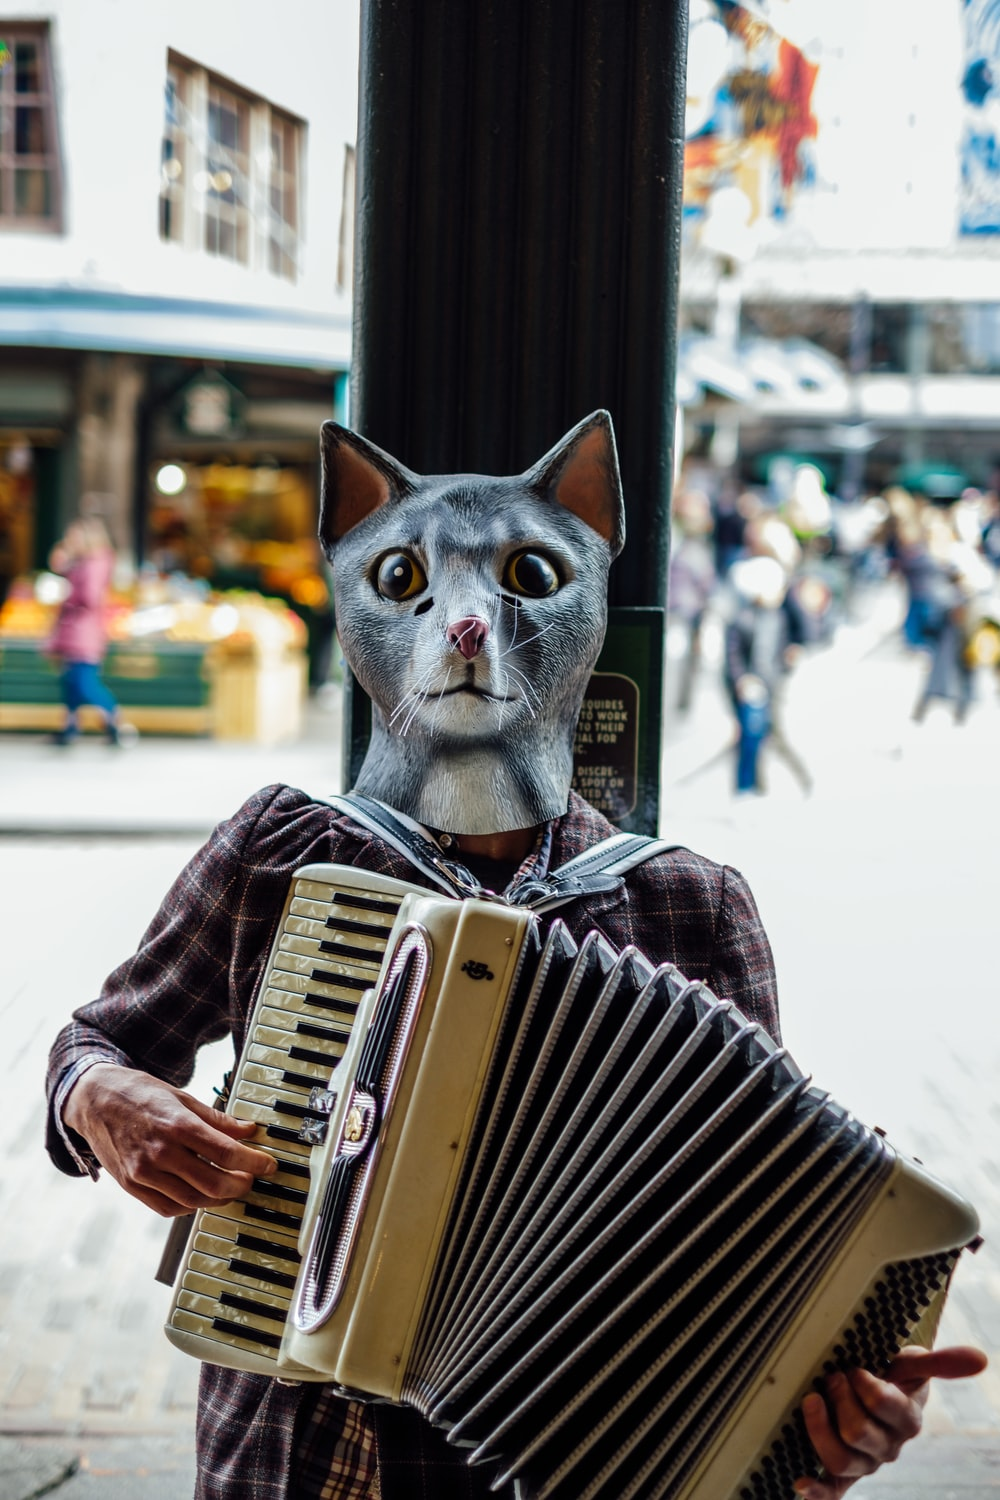 edited photo of person playing accordion